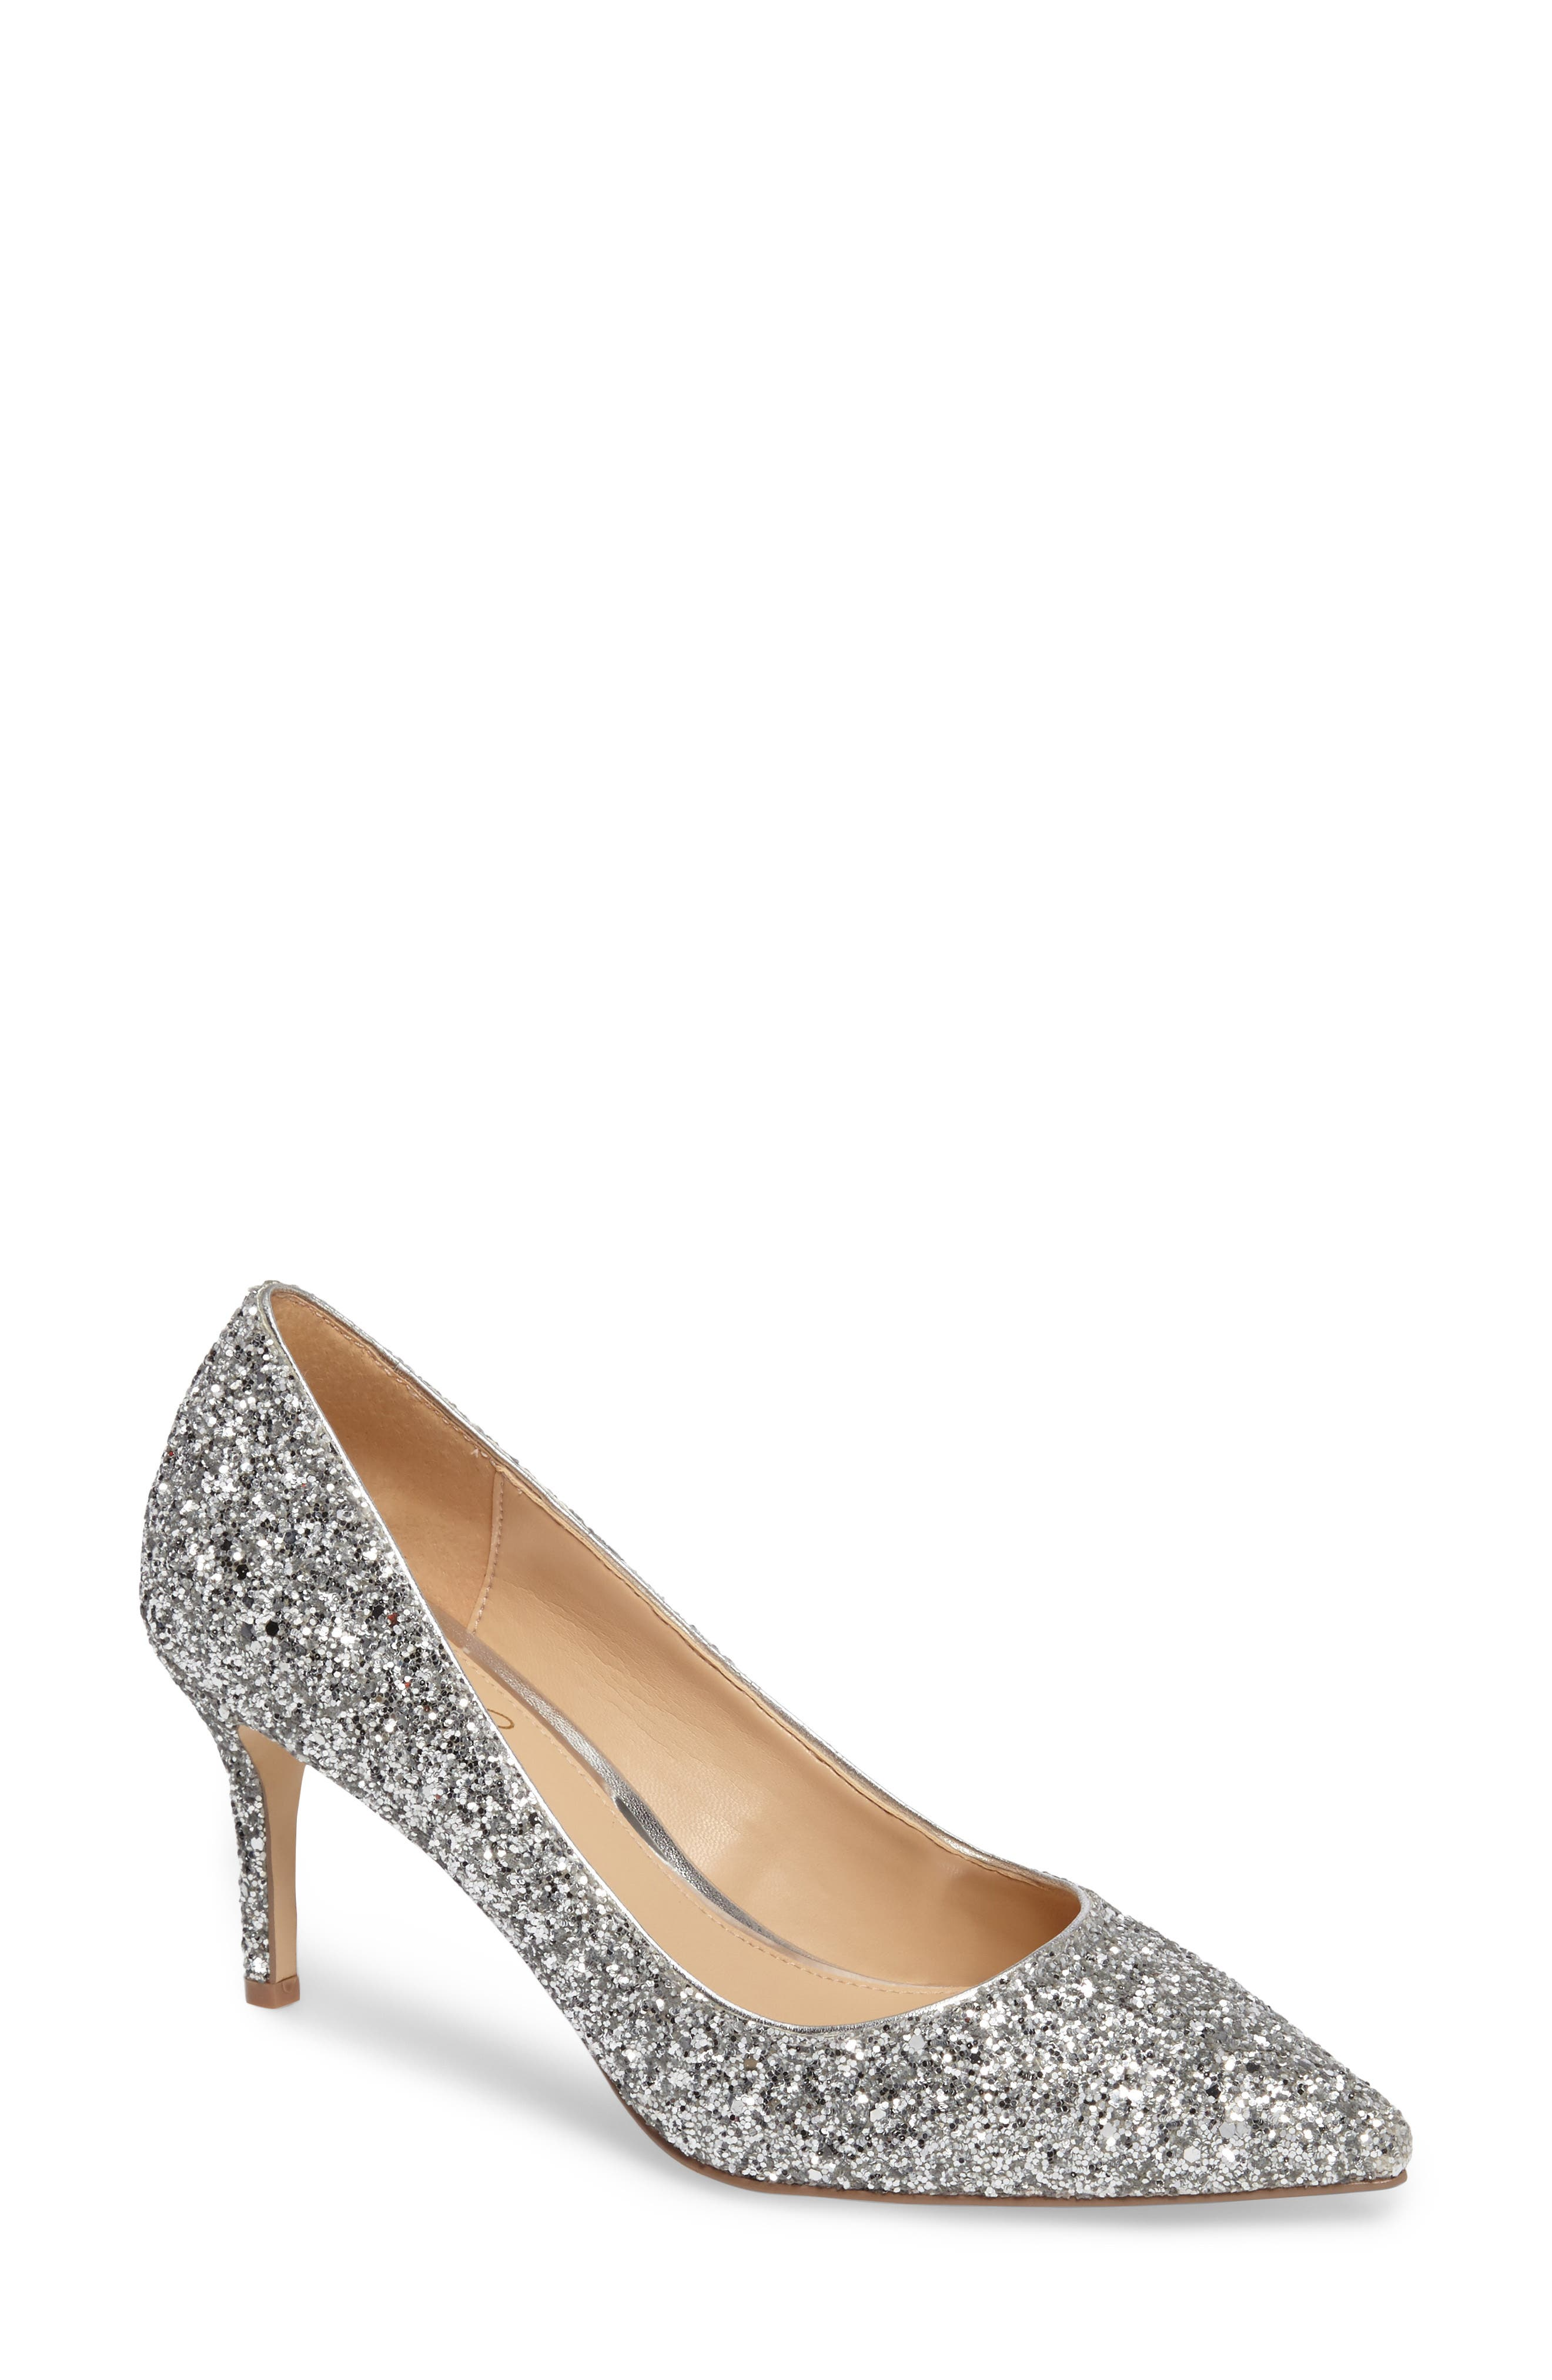 Lyla Glitter Pointy Toe Pump,                         Main,                         color, Silver